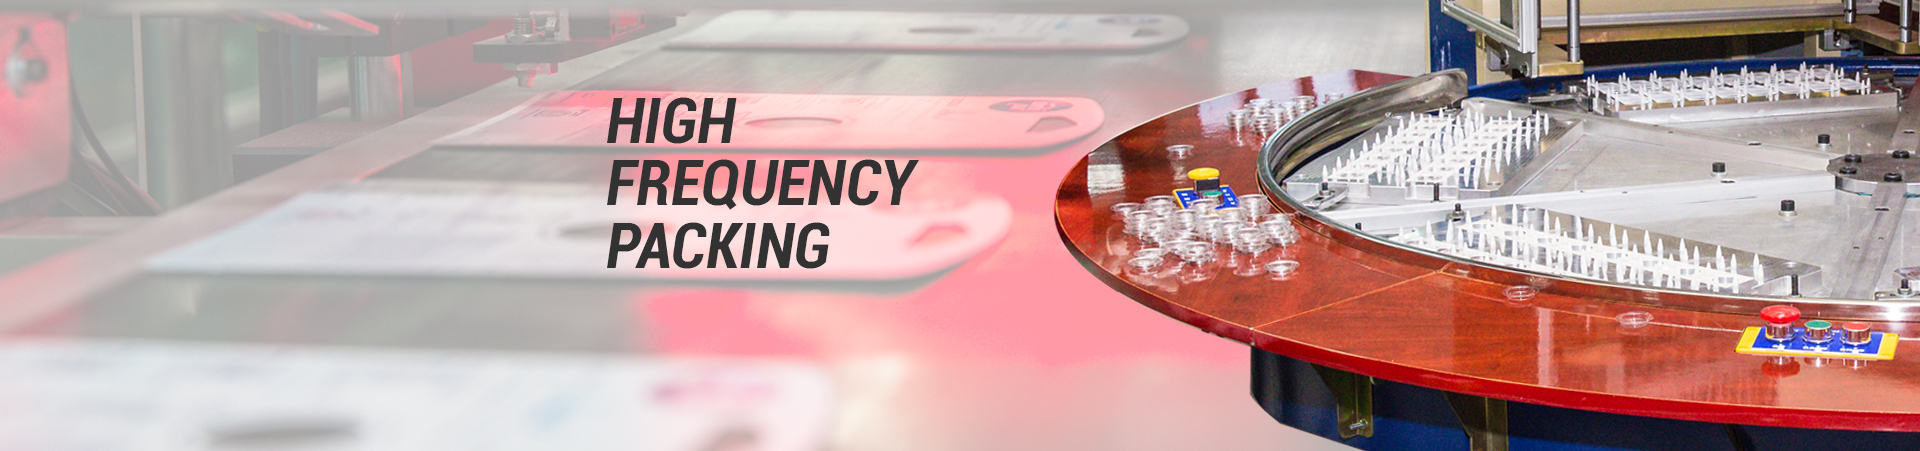 High-Frequency-Packing-Banner-1920x451